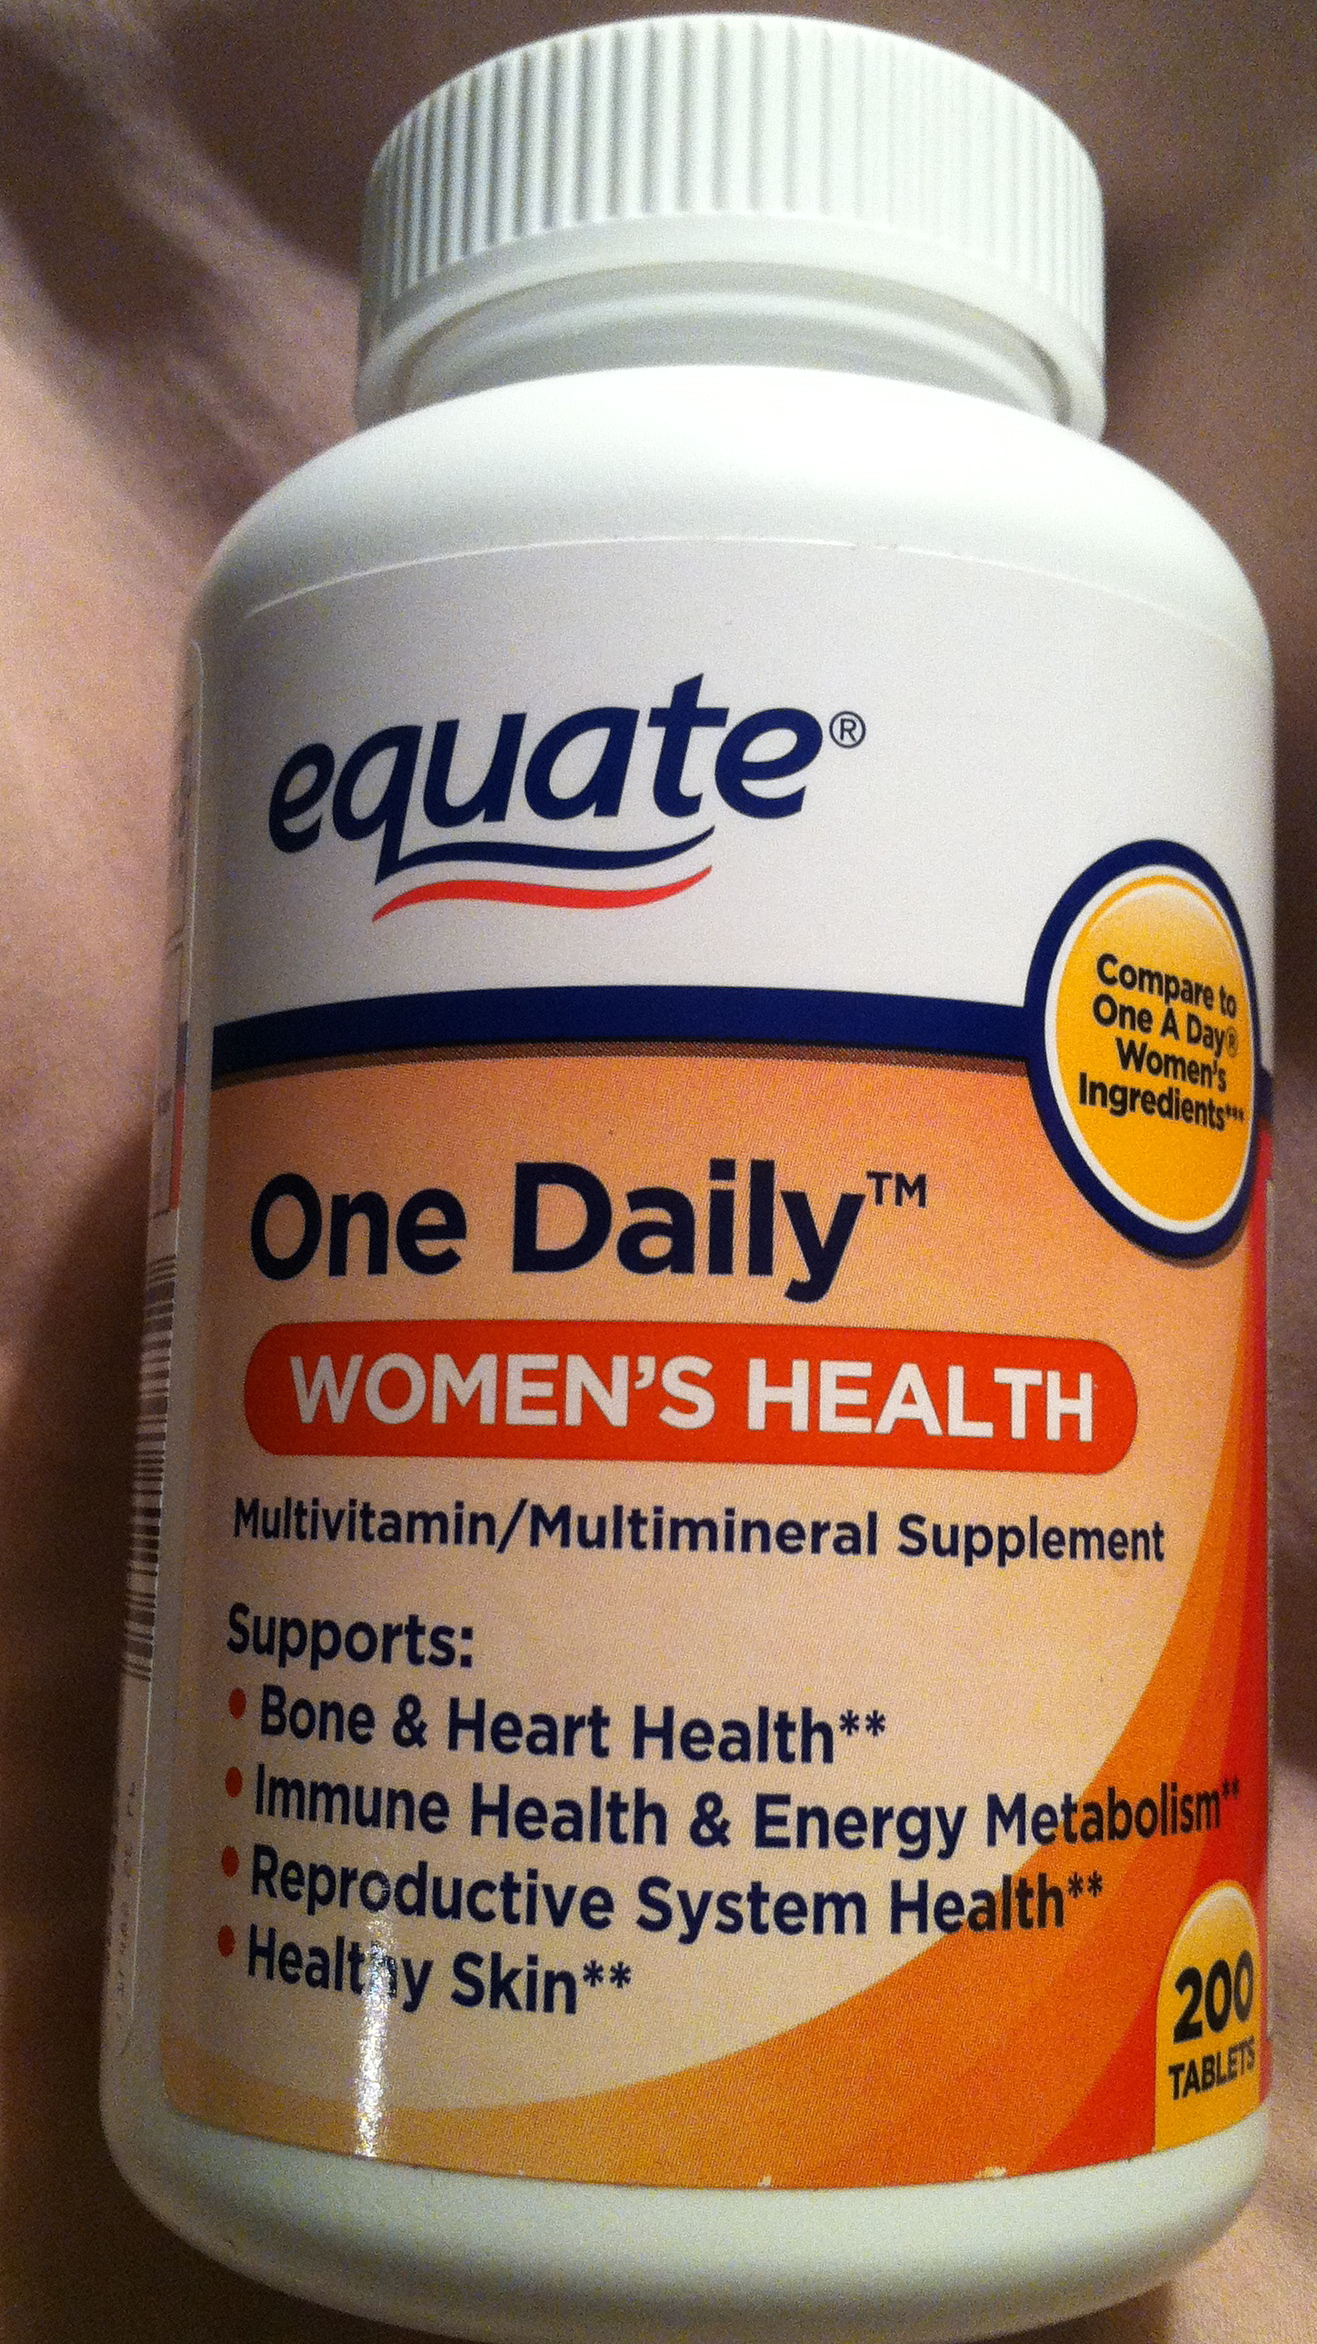 Daily multivitamin for women